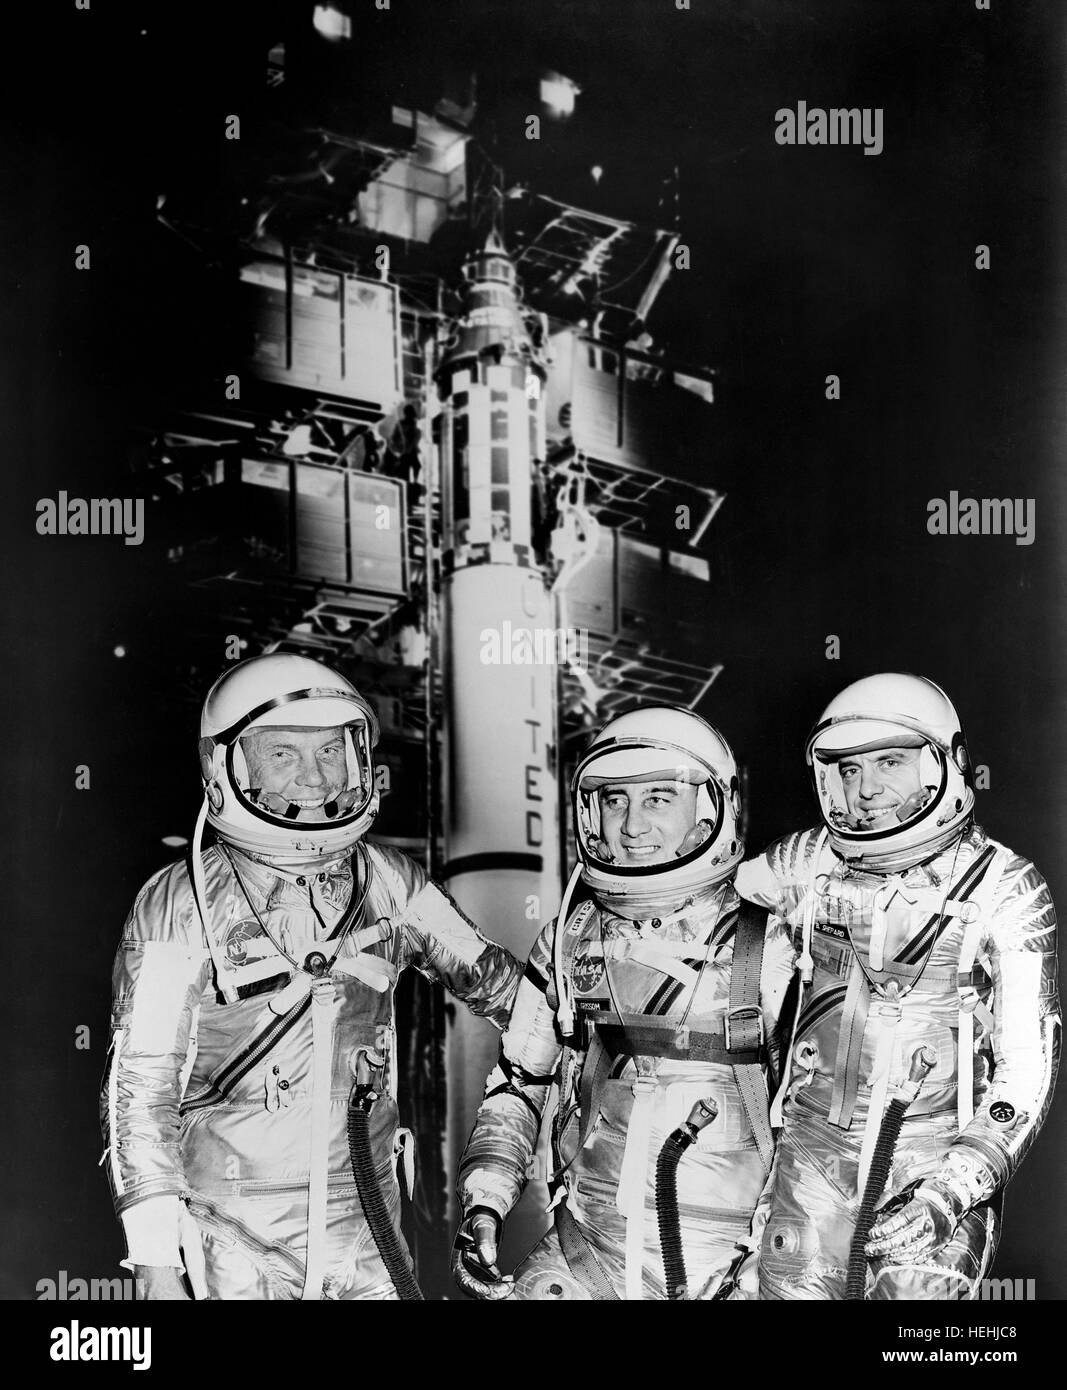 NASA Mercury astronauts (L-R) John Glenn, Gus Grissom, and Alan Shepard stand next to the Redstone rocket in their - Stock Image